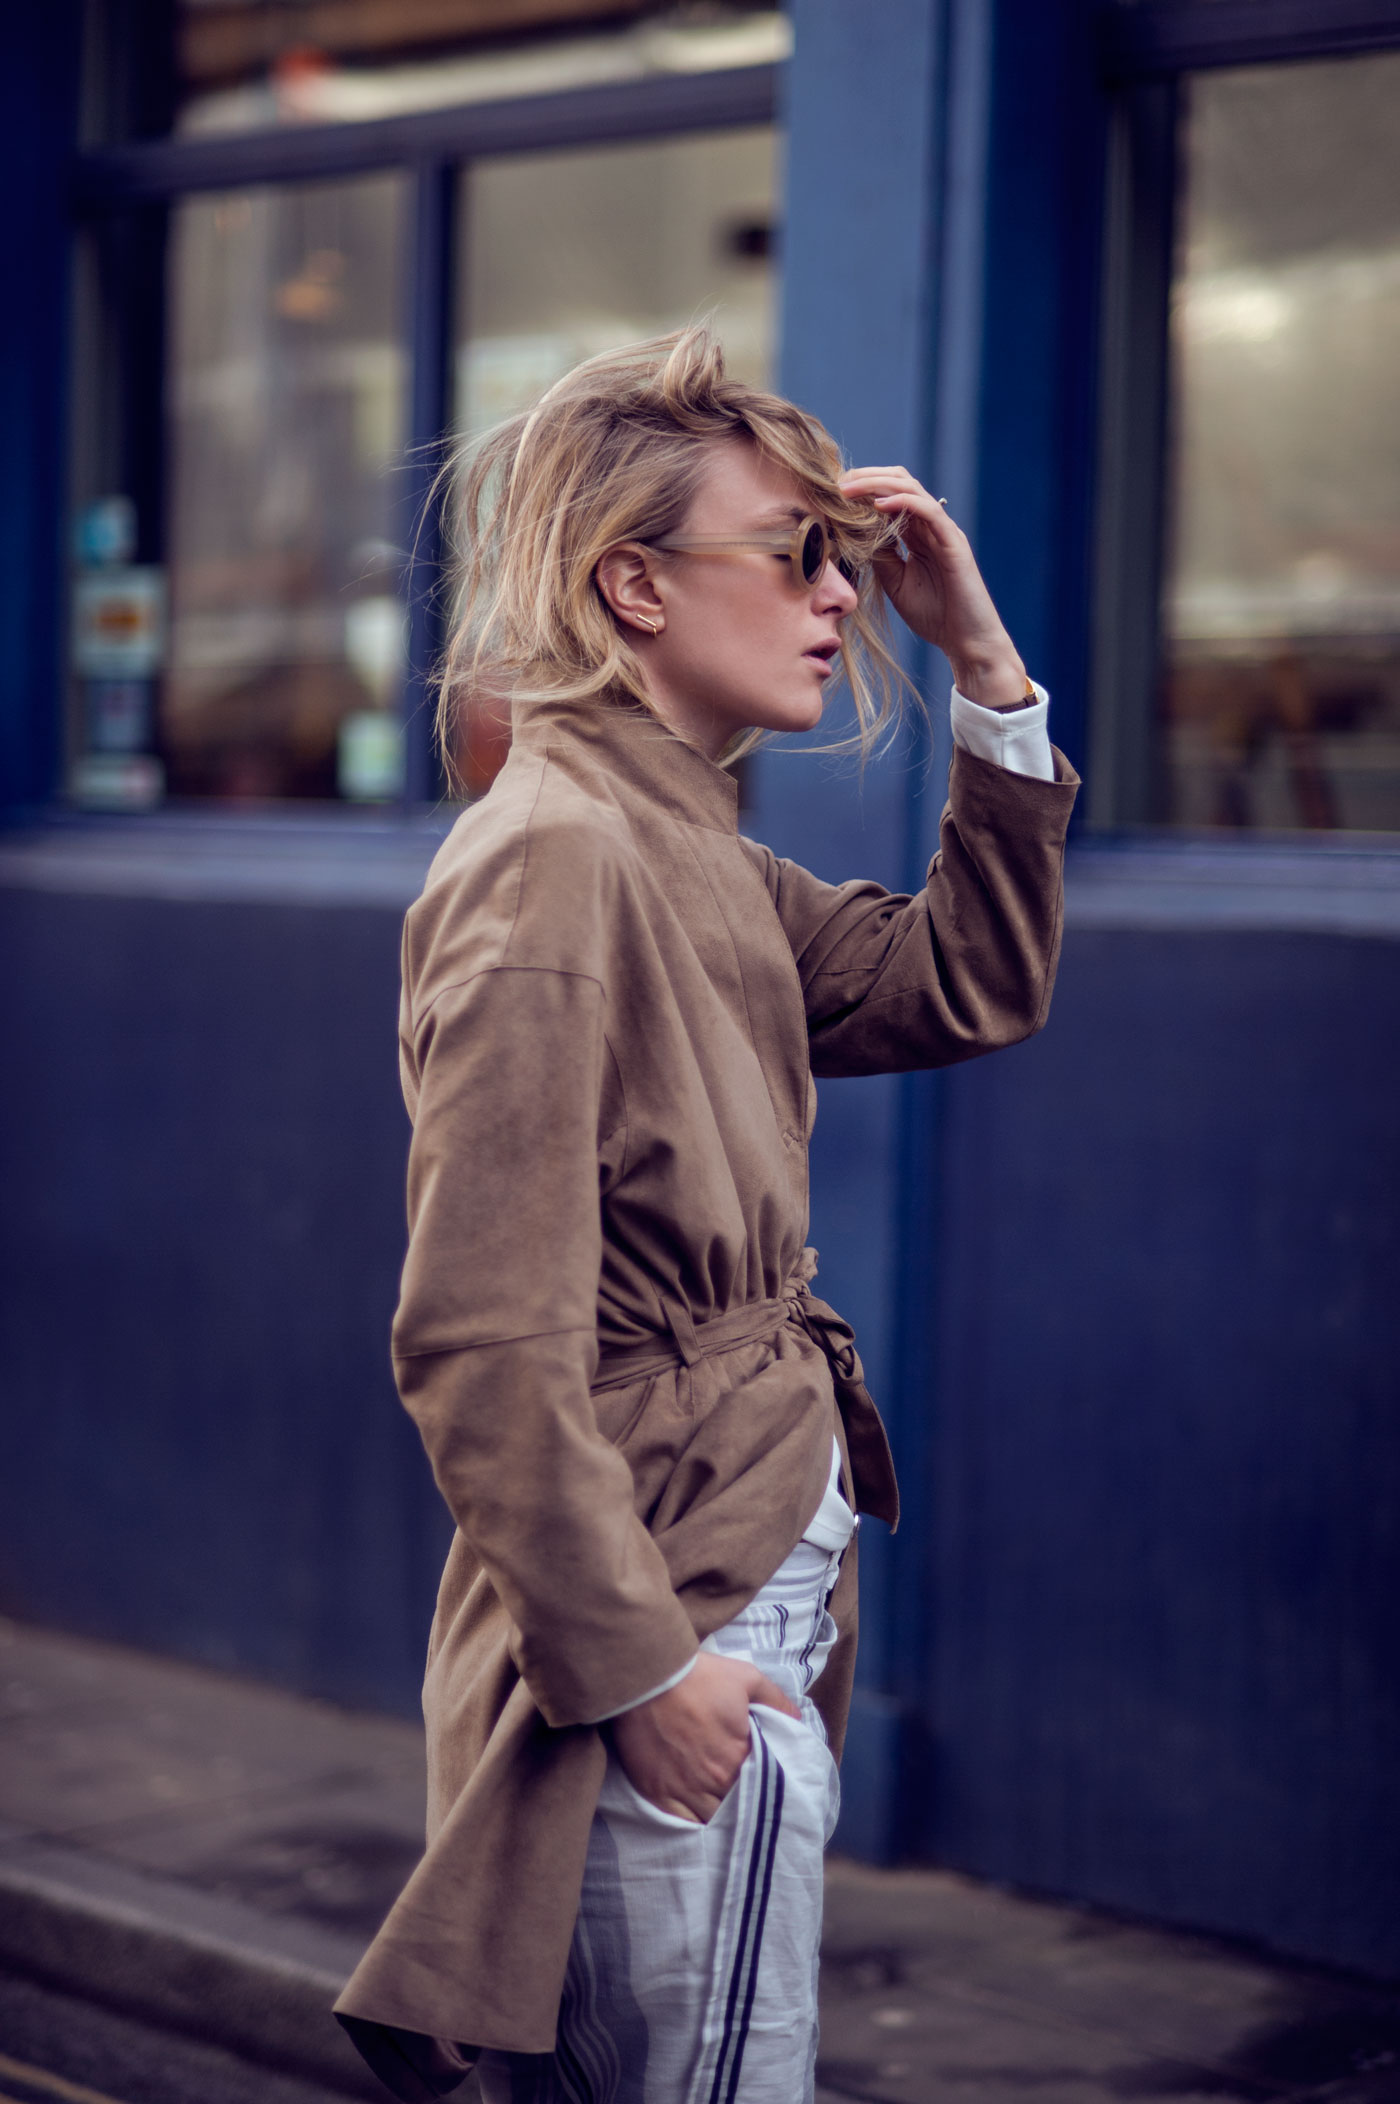 a9c49d4bef Suede Outfit  Rebecca Laurey is wearing a tan suede coat from Filippa K